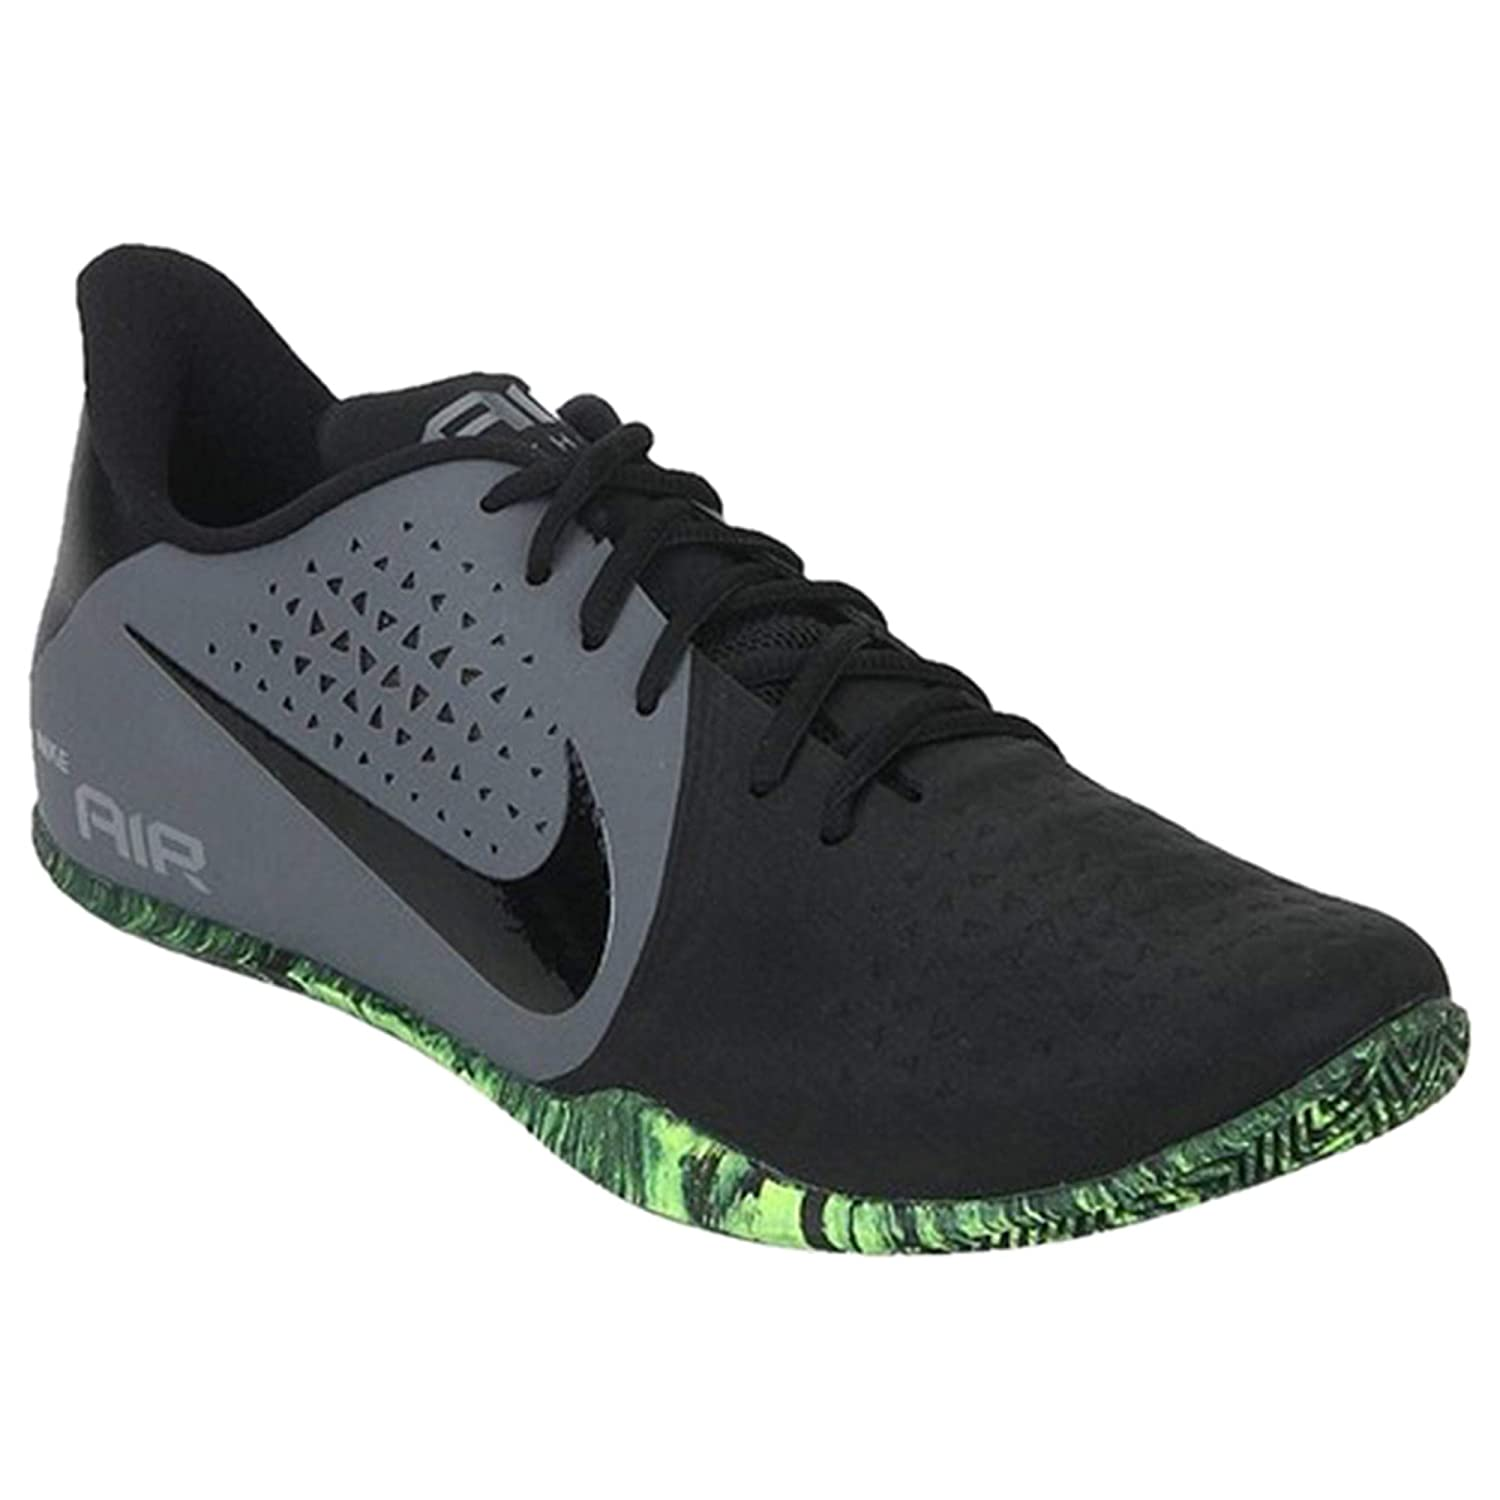 2f0eb5e11015 Nike Men s Air Behold Low Dark Grey-Black-Volt Basketball Shoes-10  UK India(45 EU)(11 US) (898450-008)  Buy Online at Low Prices in India -  Amazon.in